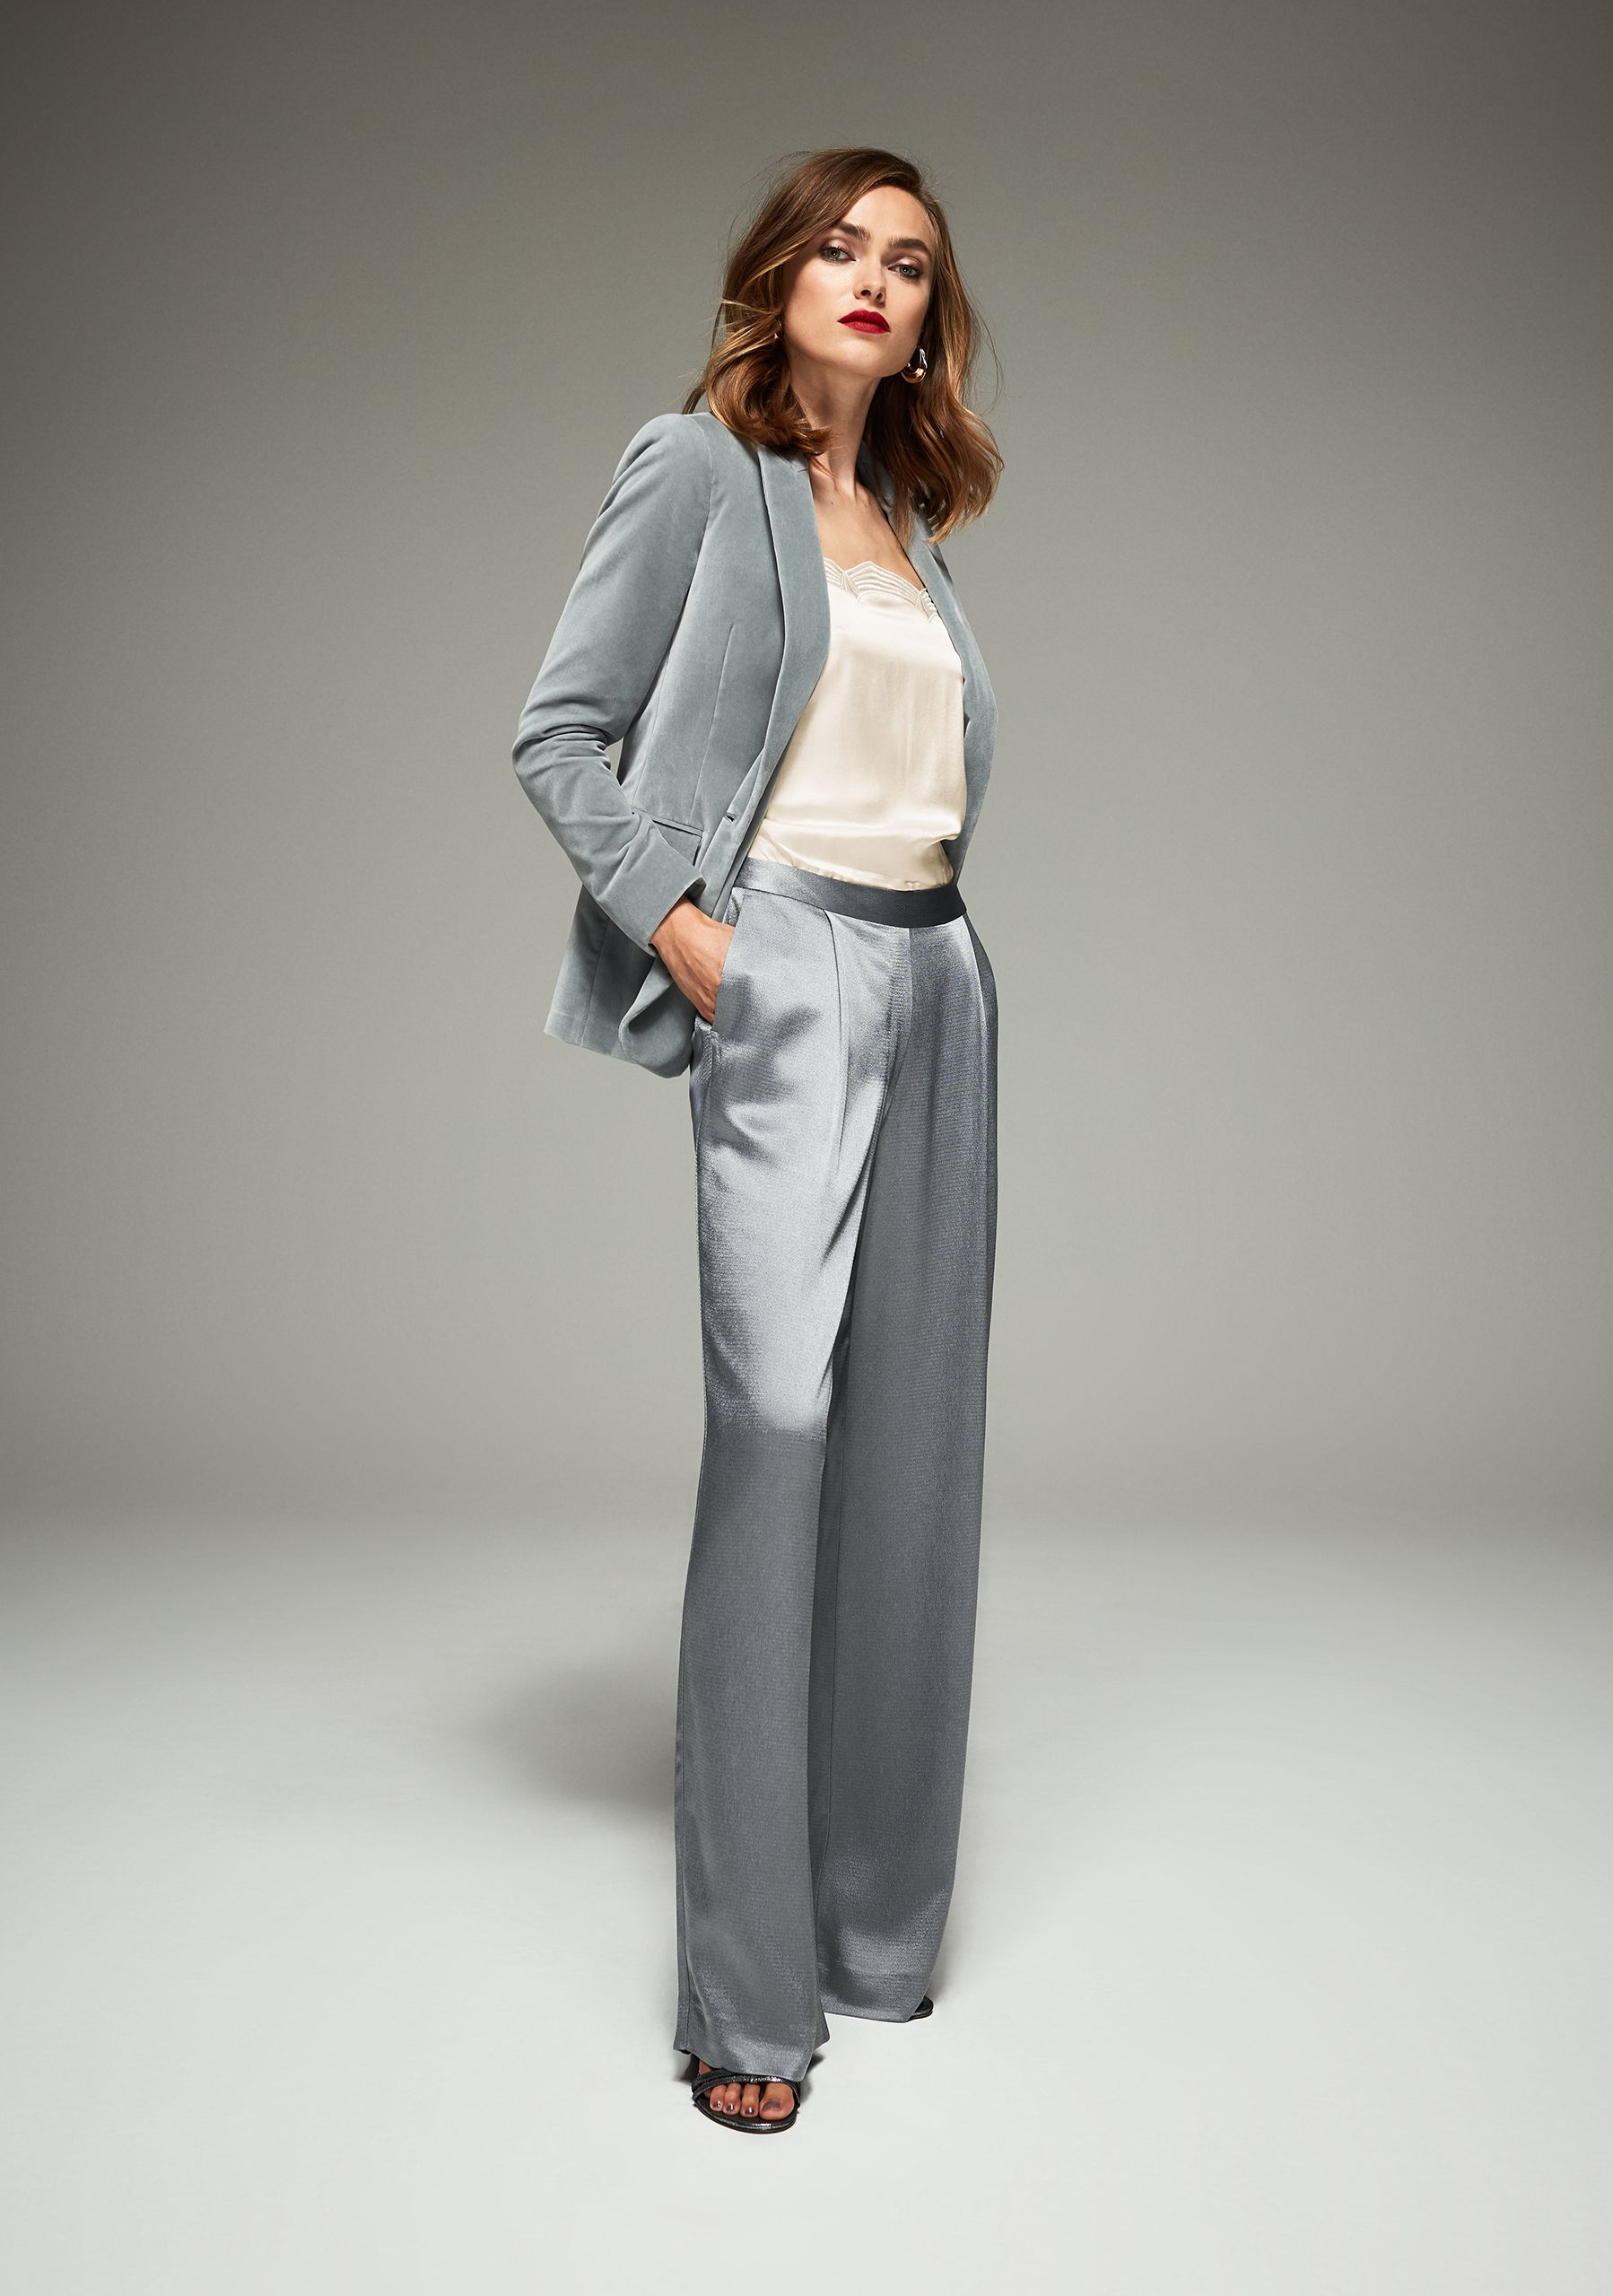 ae553fd02d6d46 A fresh new chapter in this season's tailoring story, the powder blue tone  of the Brie gives it an effortless sensibility that juxtaposes autumn's  darker ...